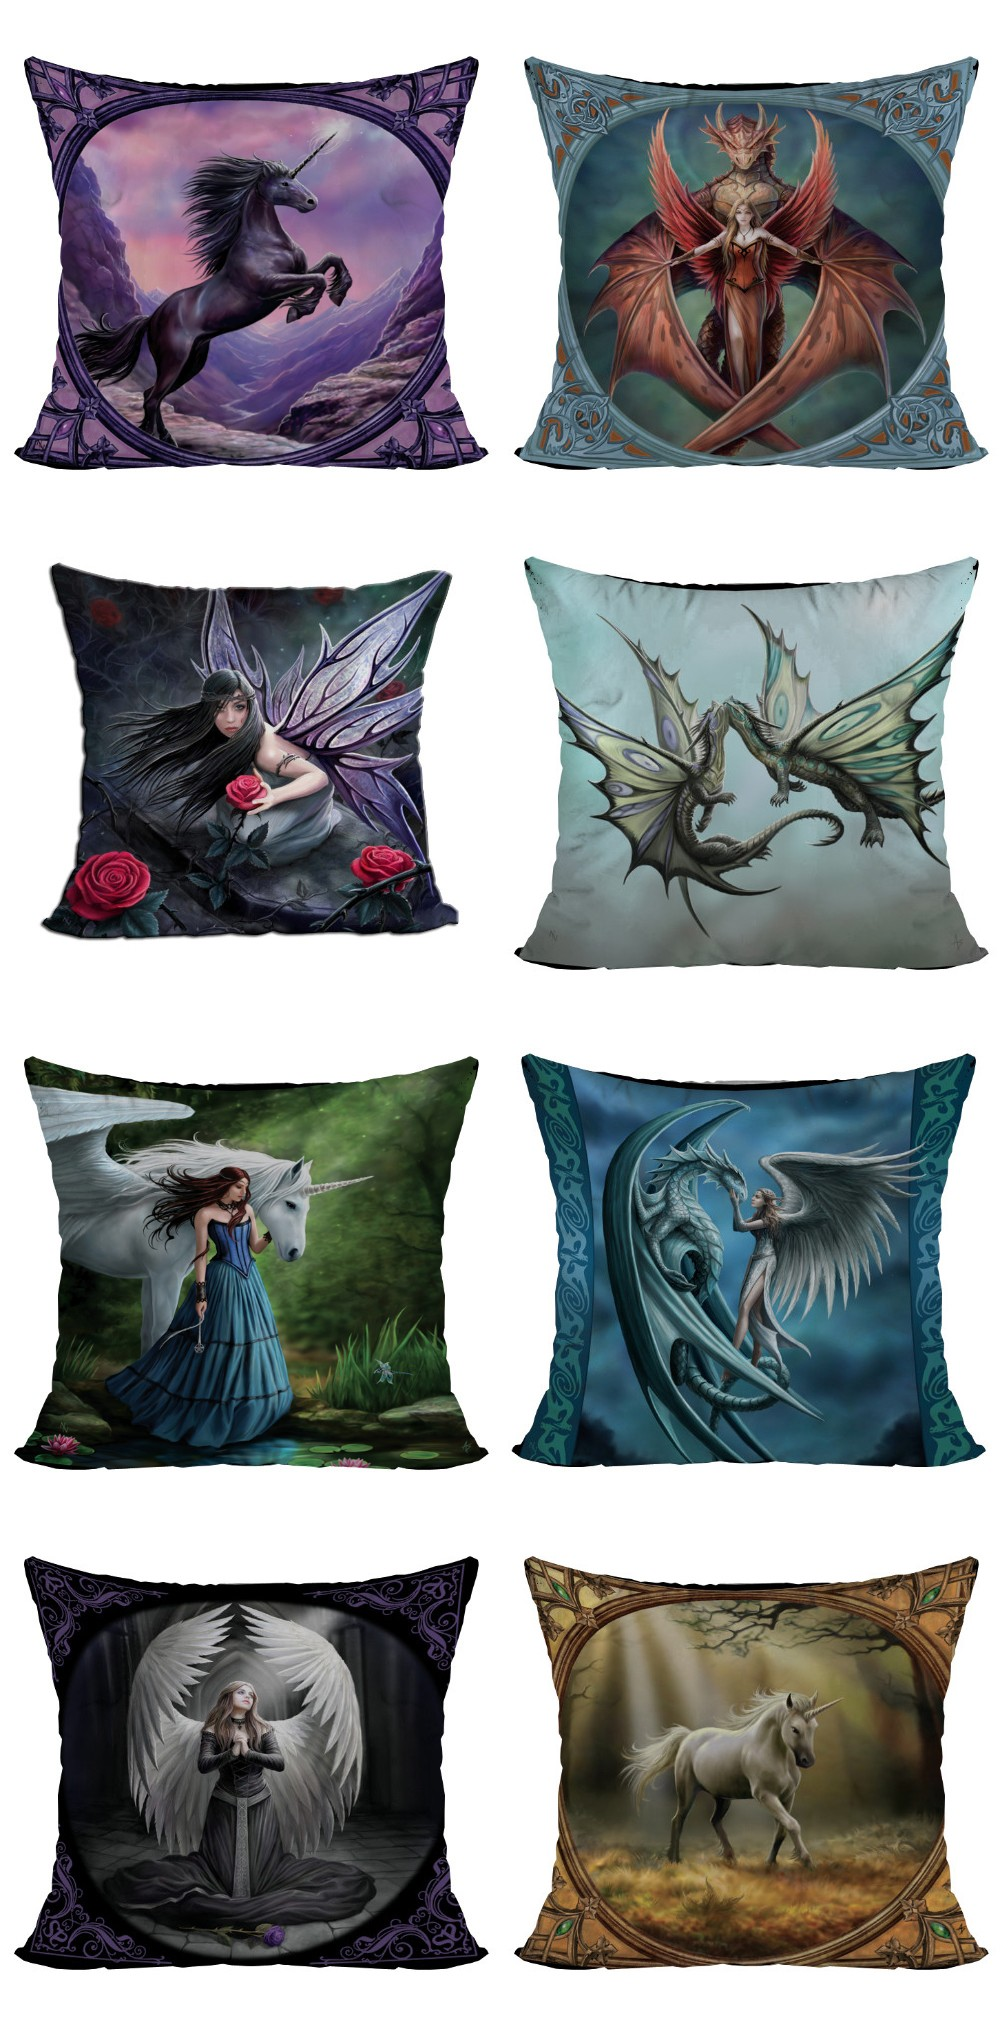 Enchanted Pillows For Vivid Dreams, Restful Slumber, & Restoration Of Energy